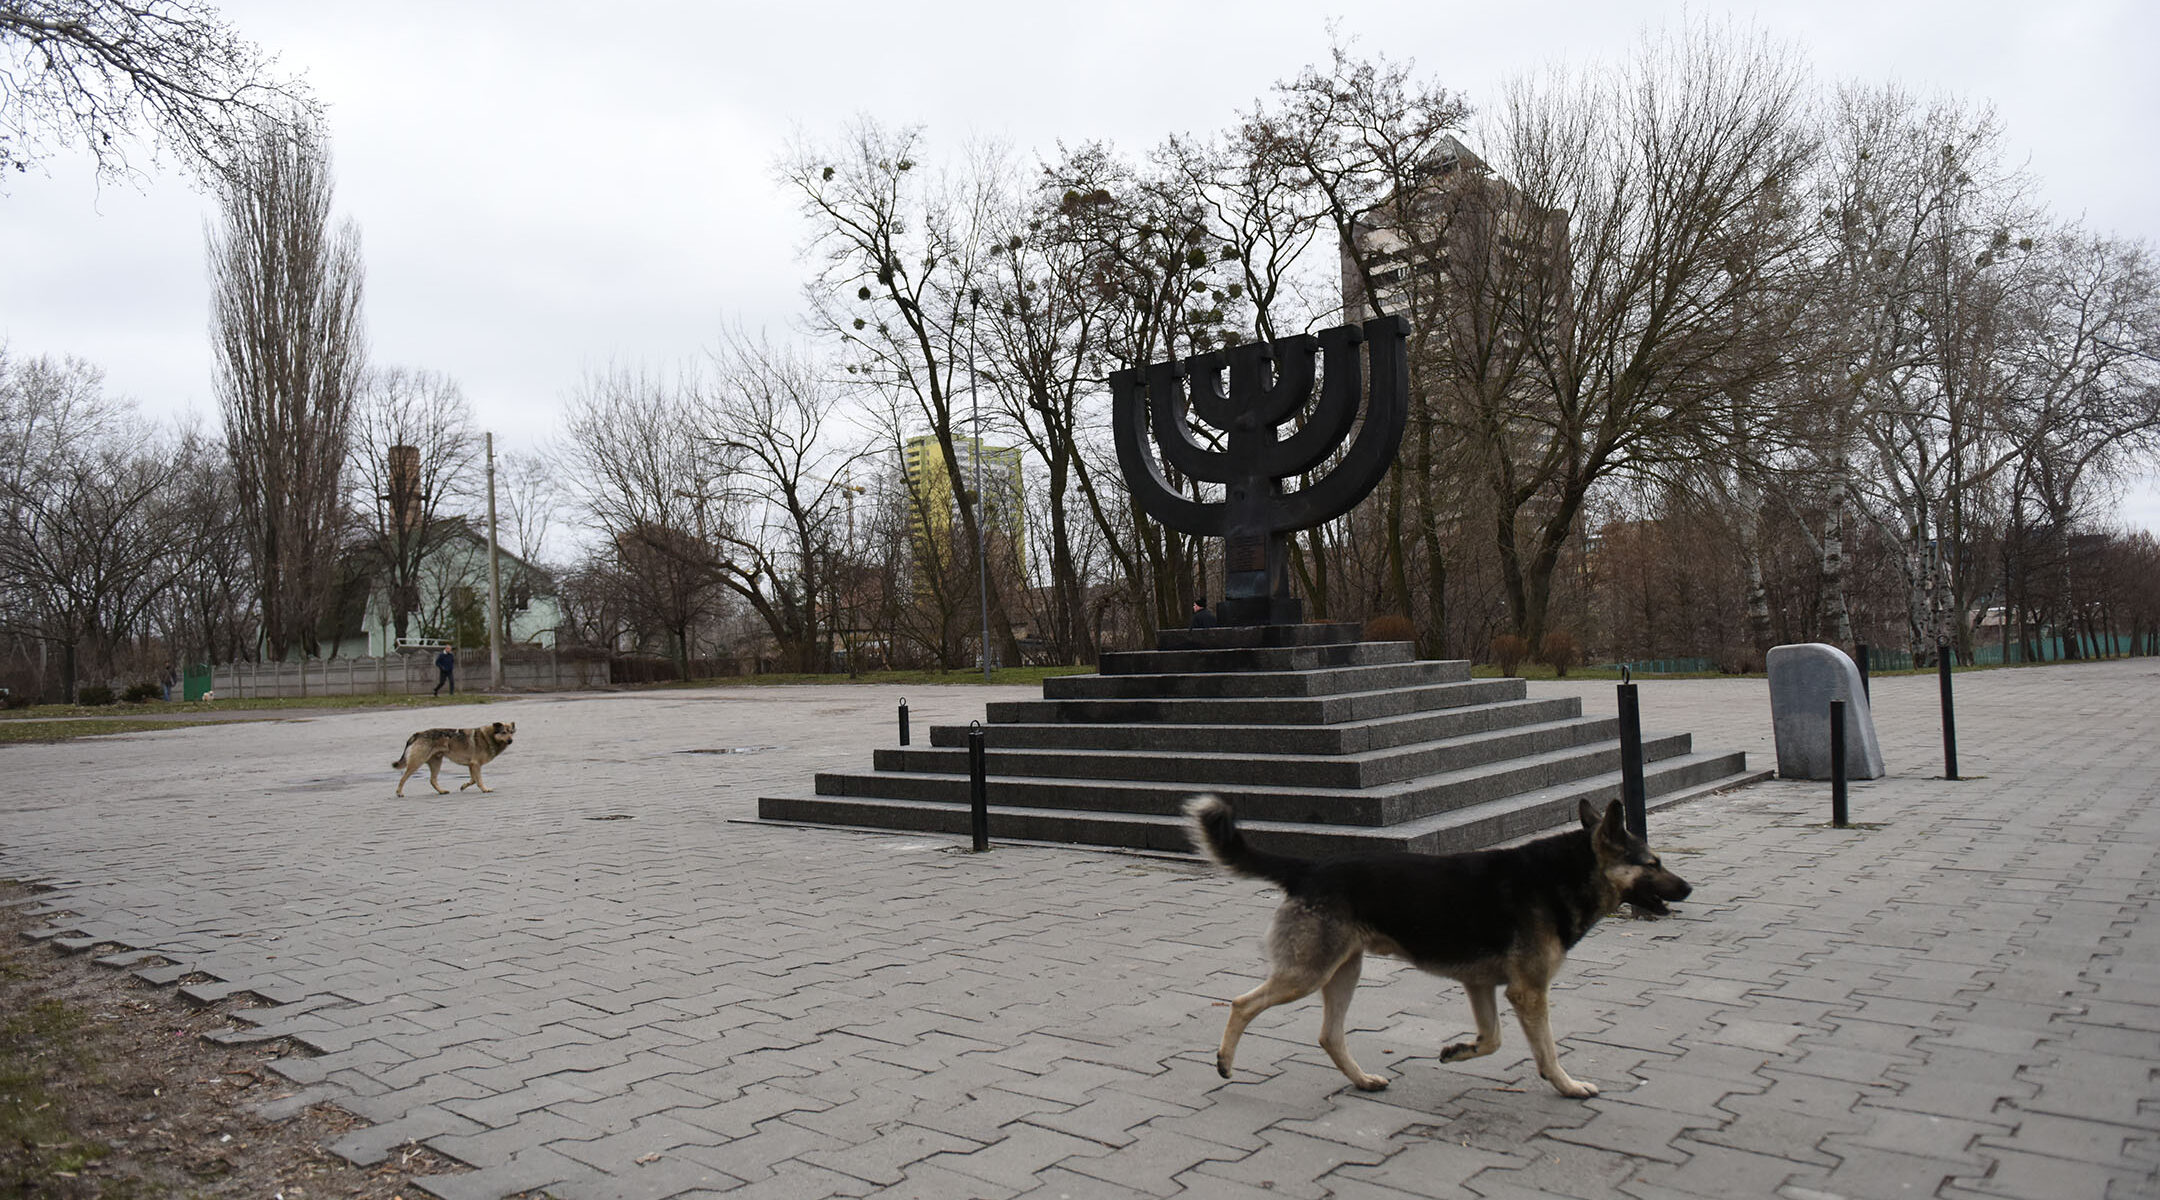 Stray dogs roam the Babi Yar monument on March 14, 2016 in Kiev, where Nazis and local collaborators murdered 30,000 Jews in 1941. (Cnaan Liphshiz)